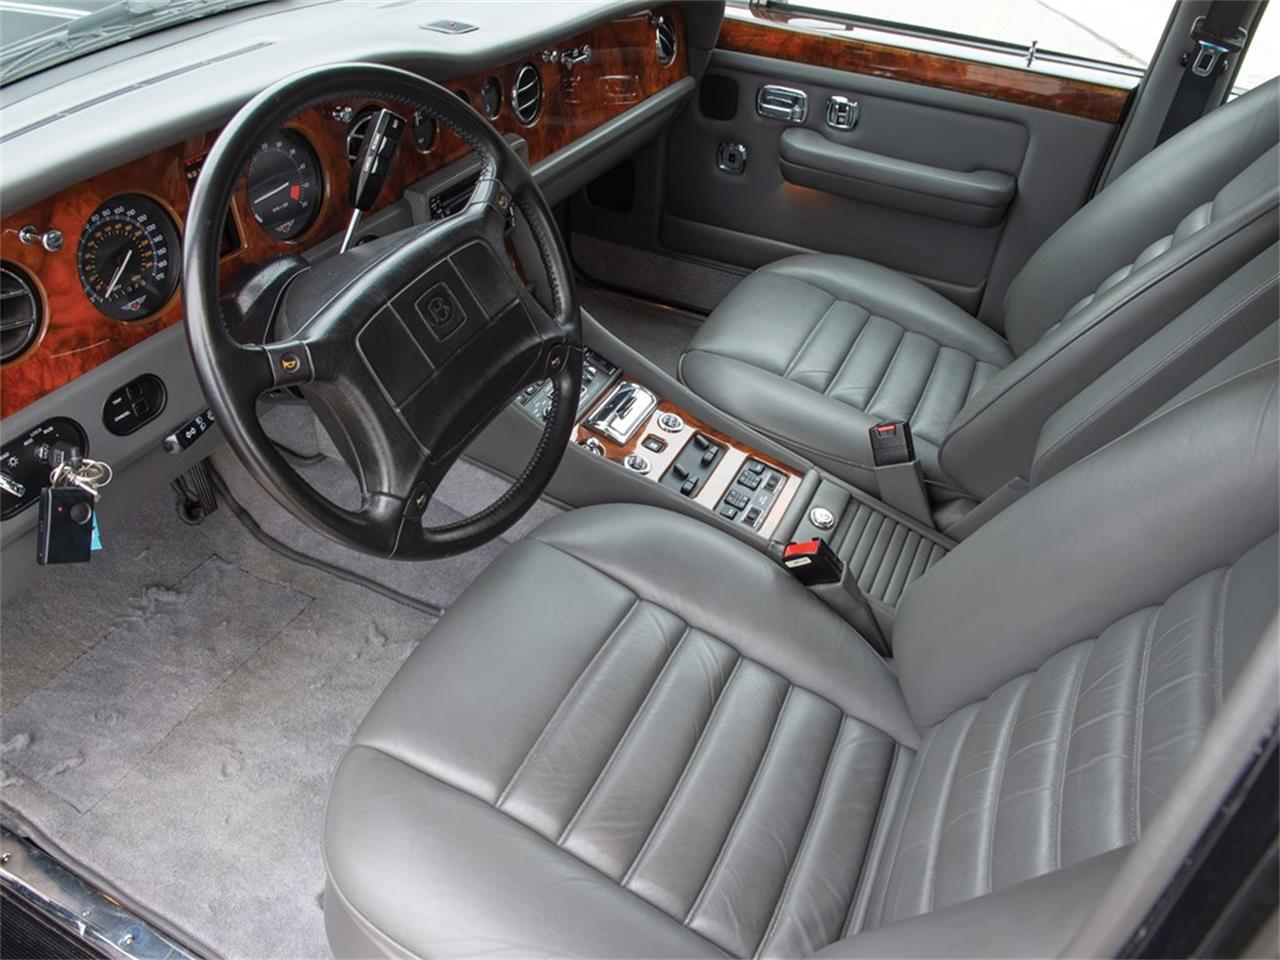 1992 Bentley Turbo R for sale in Essen, Other – photo 4